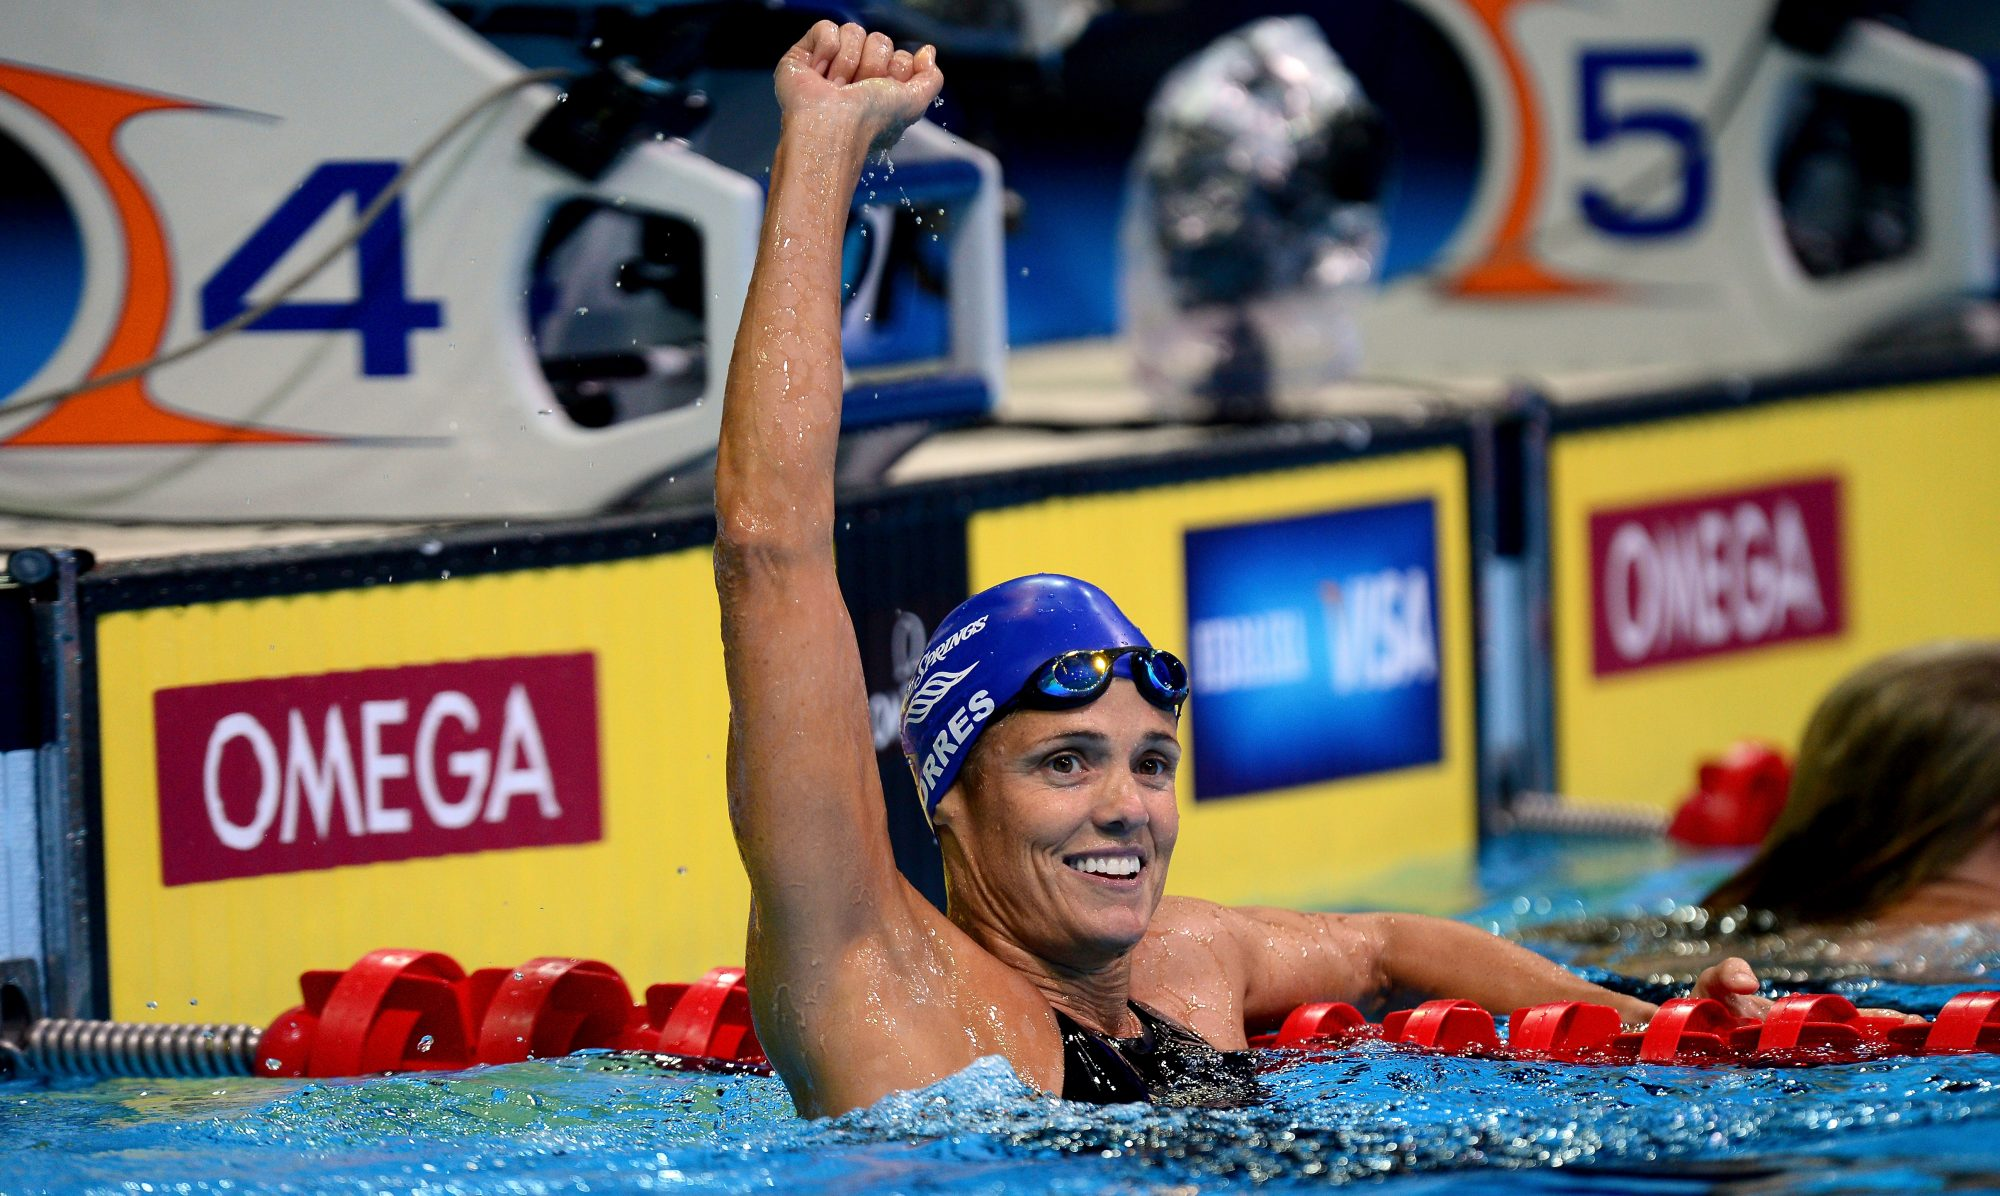 Olympic Swimmer Dara Torres on Her Psoriasis:  At First, I Was Horribly Embarrassed